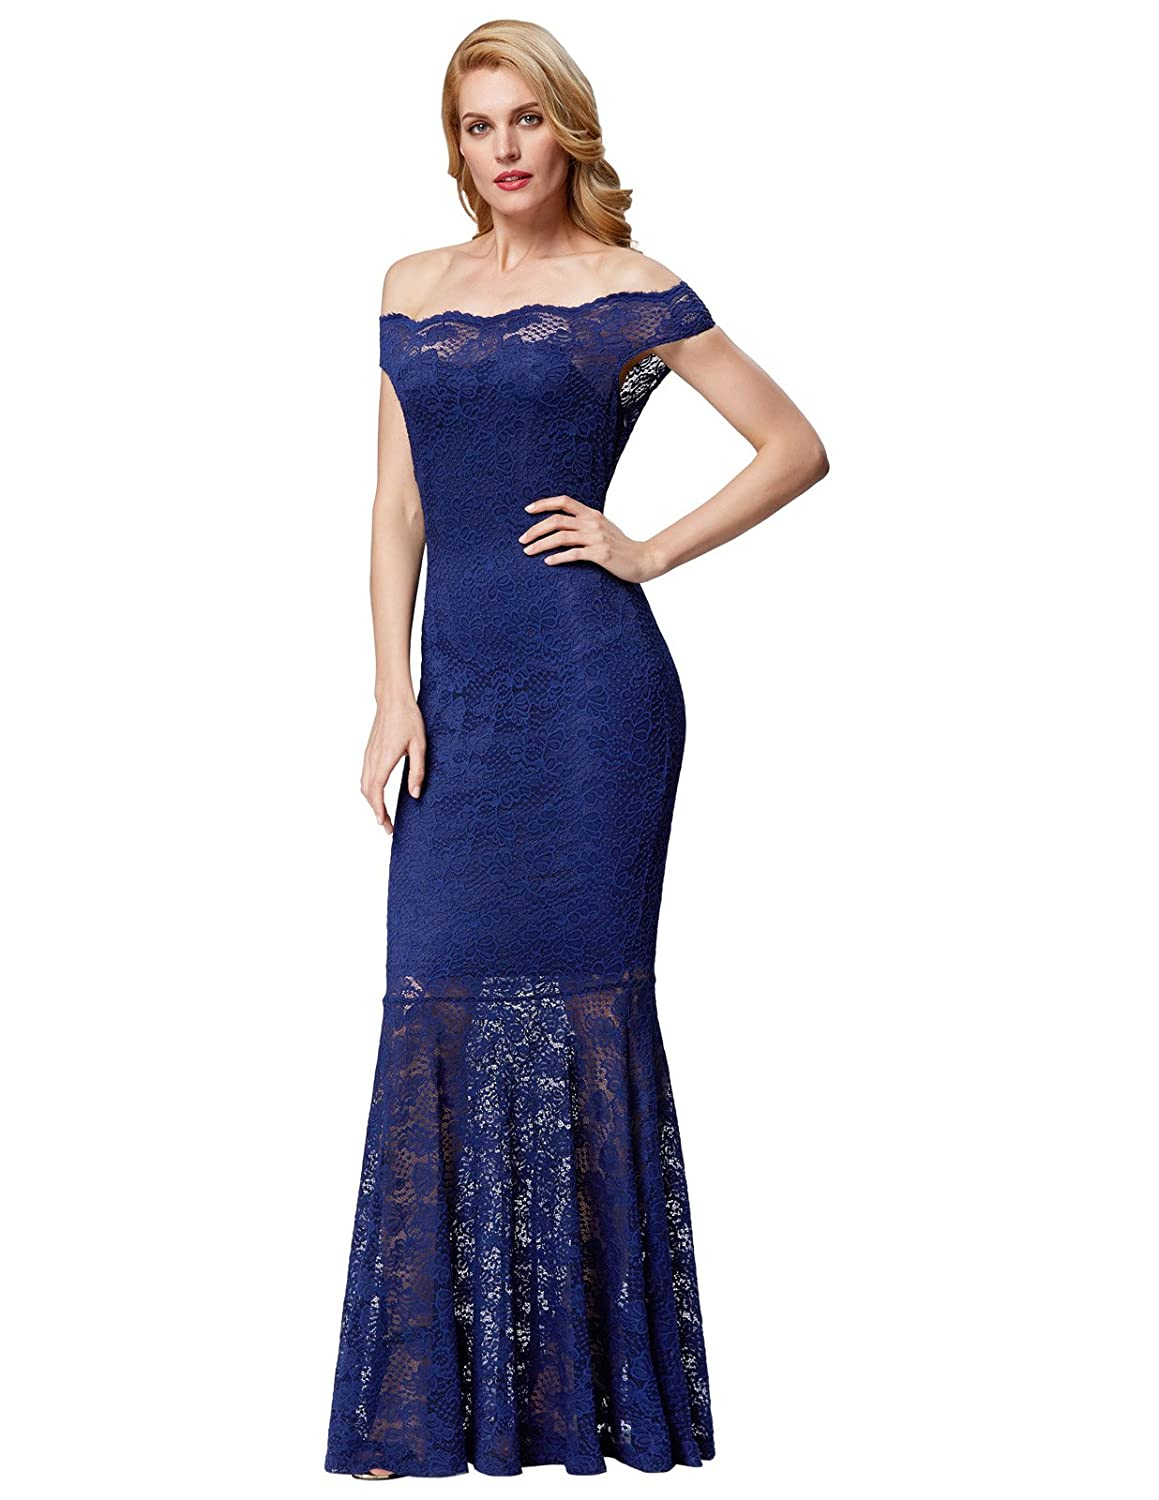 a492b302f74 Amazon.com  GRACE KARIN Women s Lace Beading Mermaid Evening Gown Prom  Fishtail Maxi Dress  Clothing